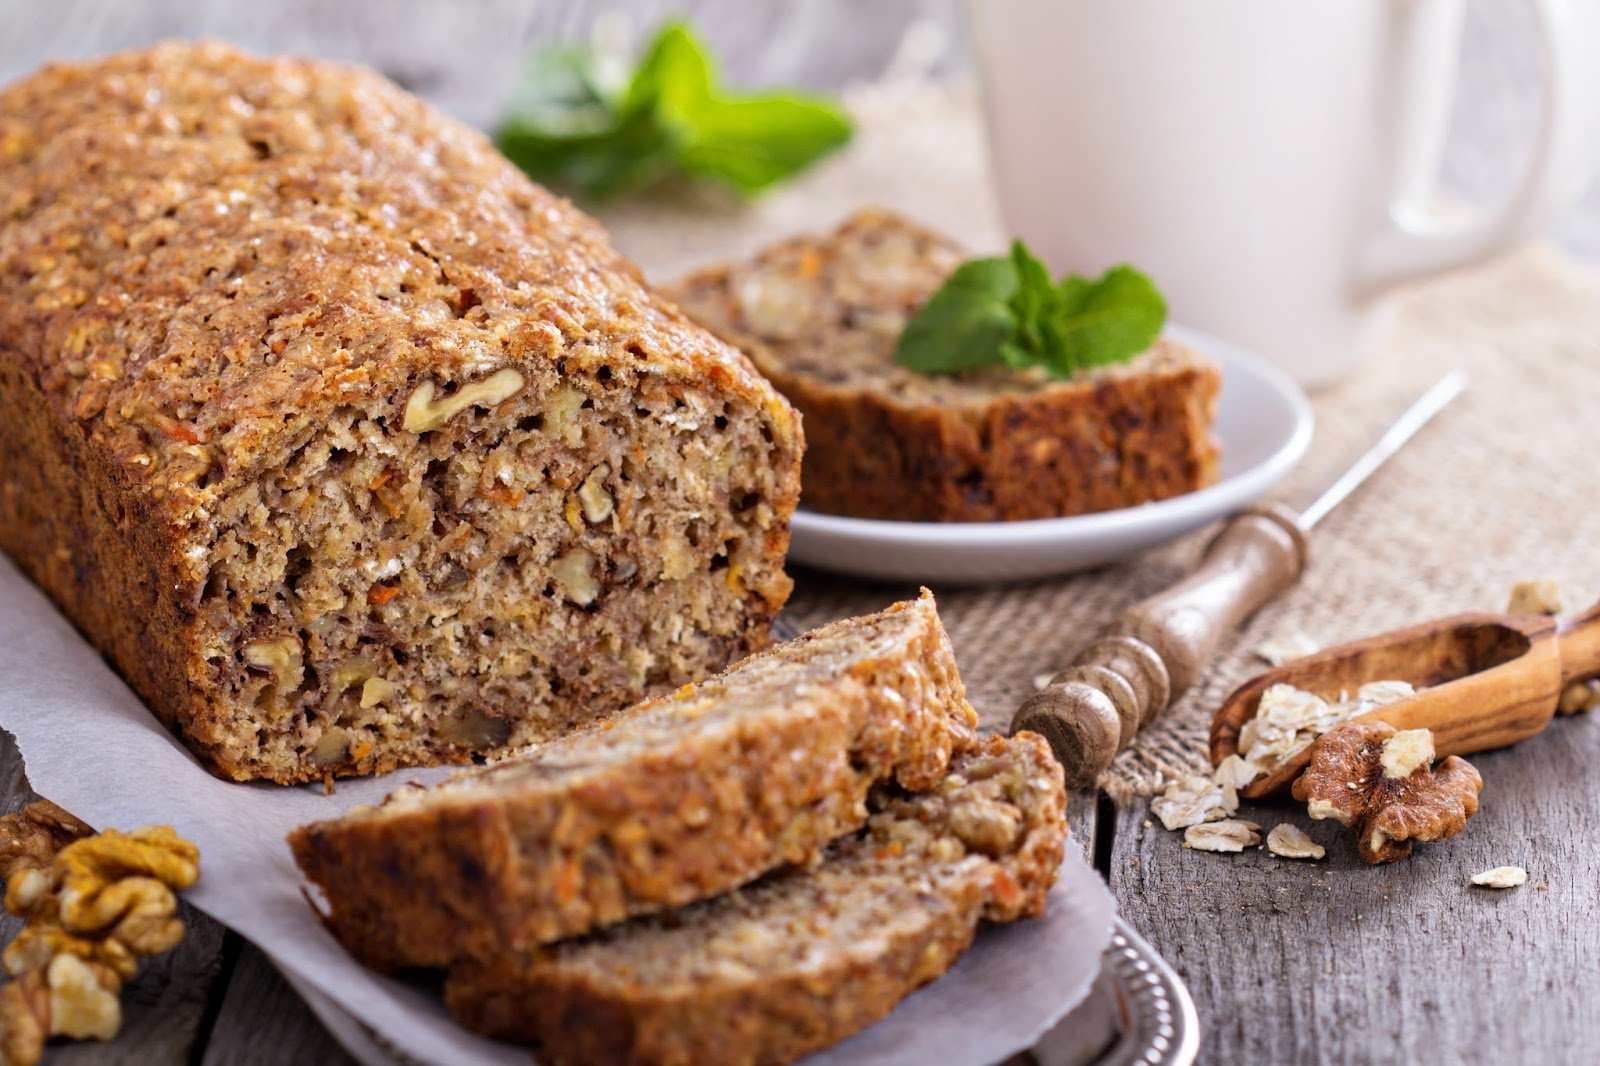 Carrot, Walnut and Linseed Cake or Cup-Cakes